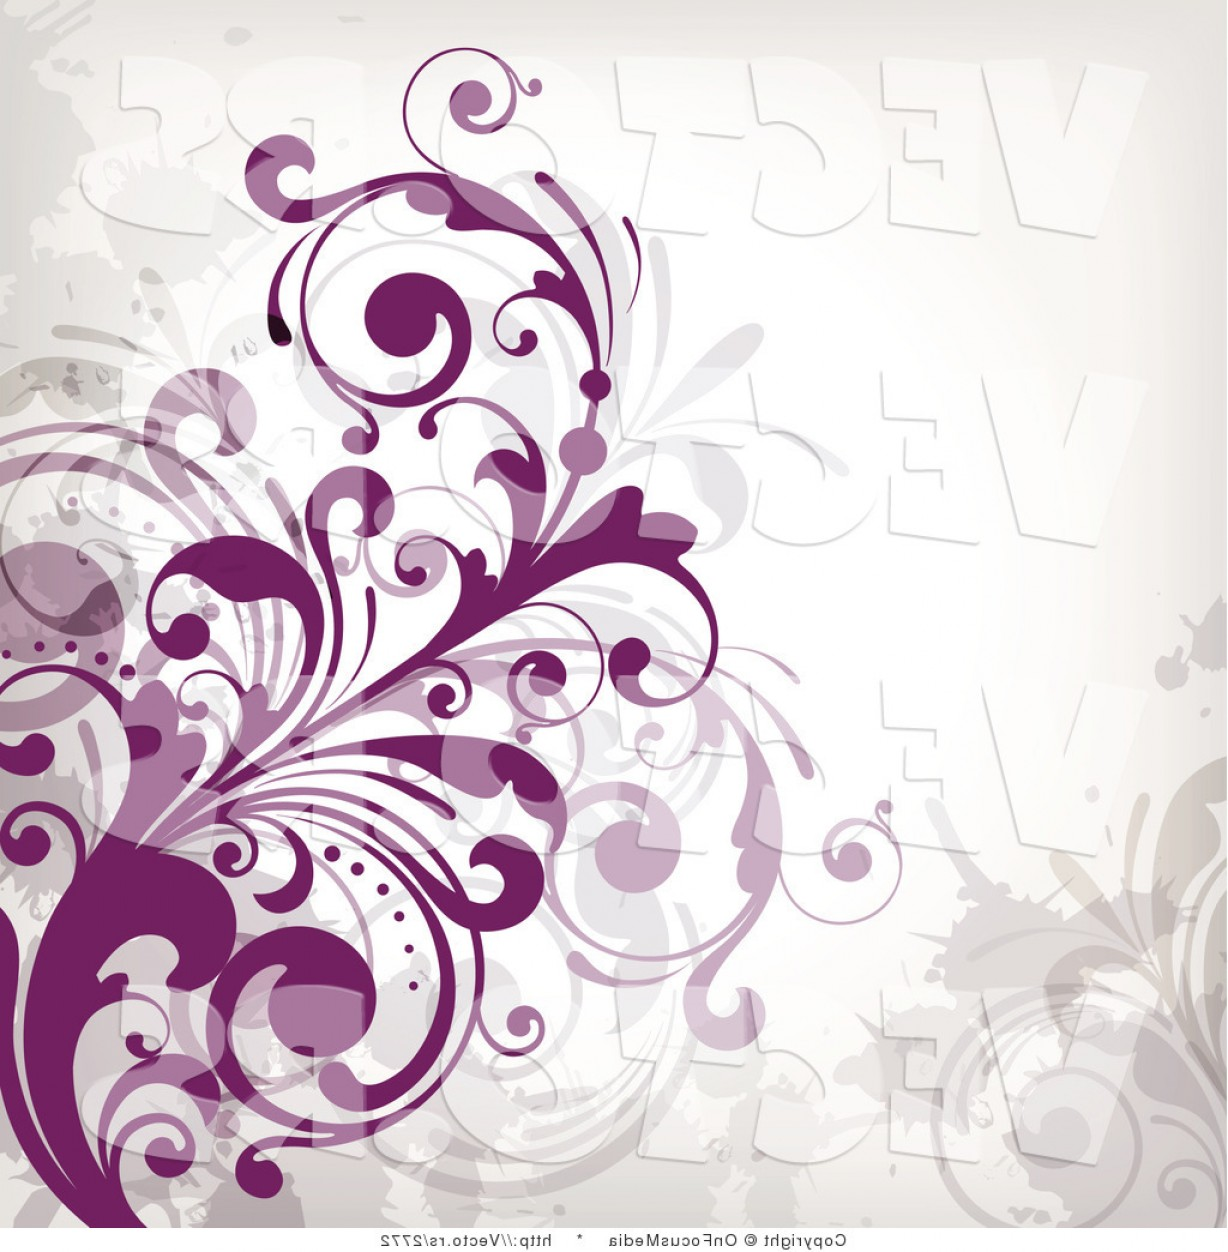 Vector Flourish Backgrounds: Vector Of Purple Flourish Vines Background Design On White Background Version By Onfocusmedia